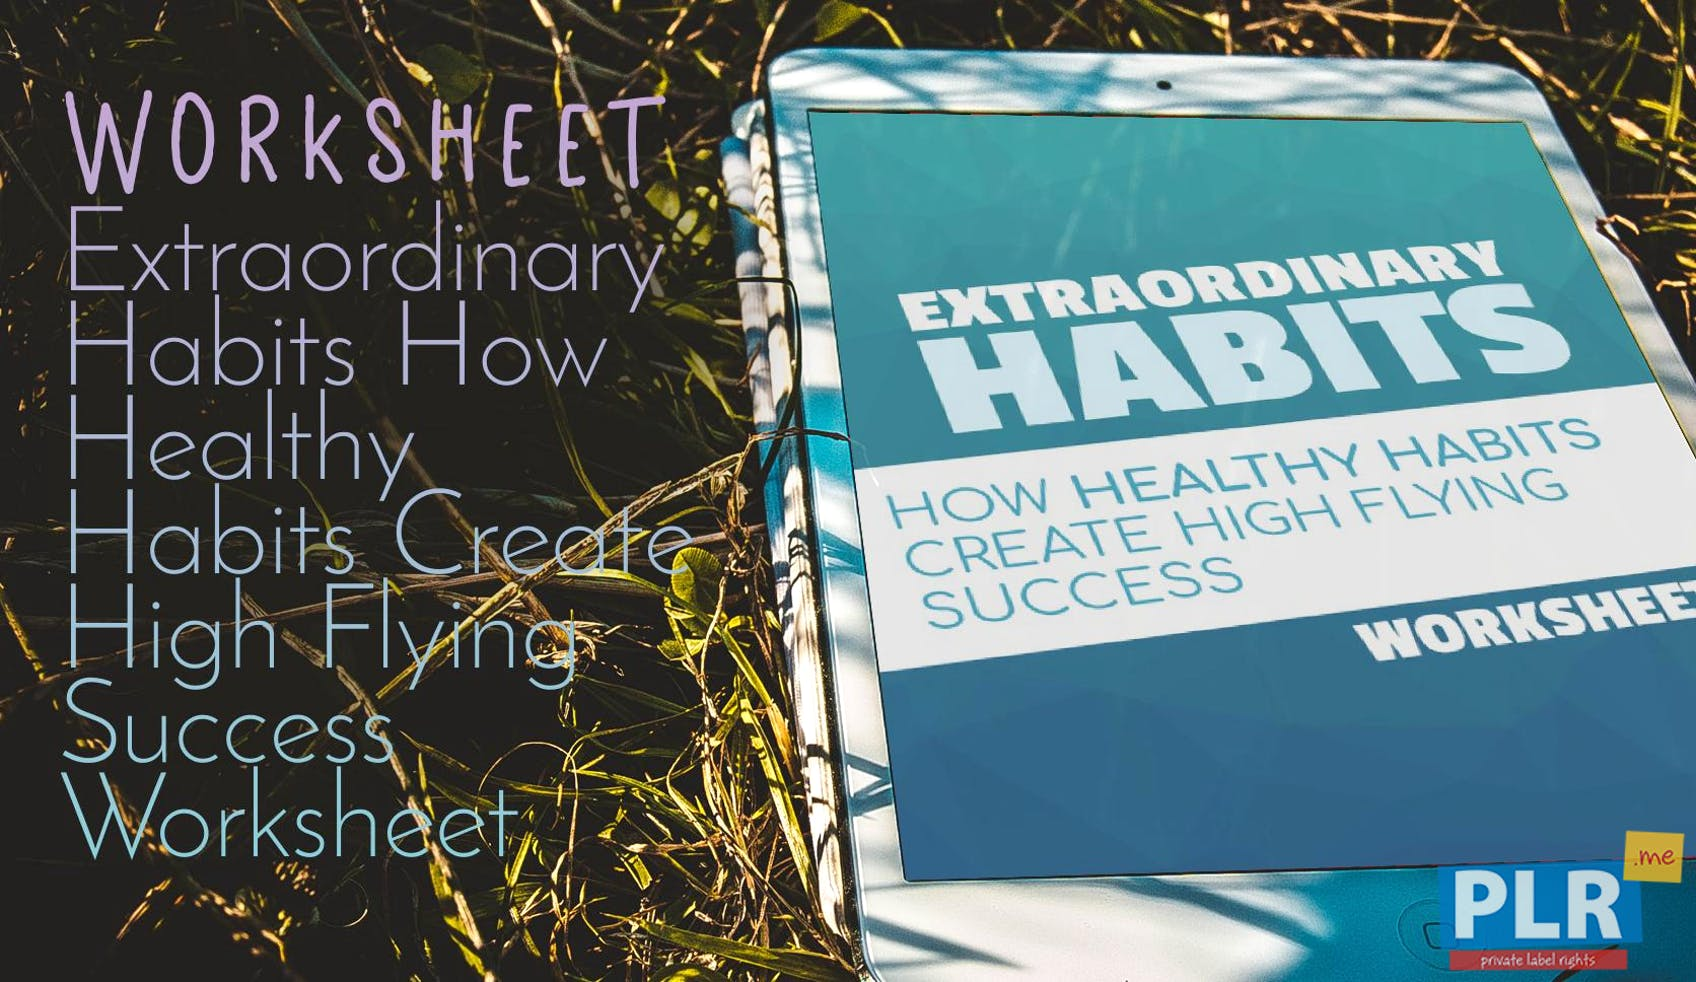 PLR Worksheets - Extraordinary Habits How Healthy Habits Create High ...